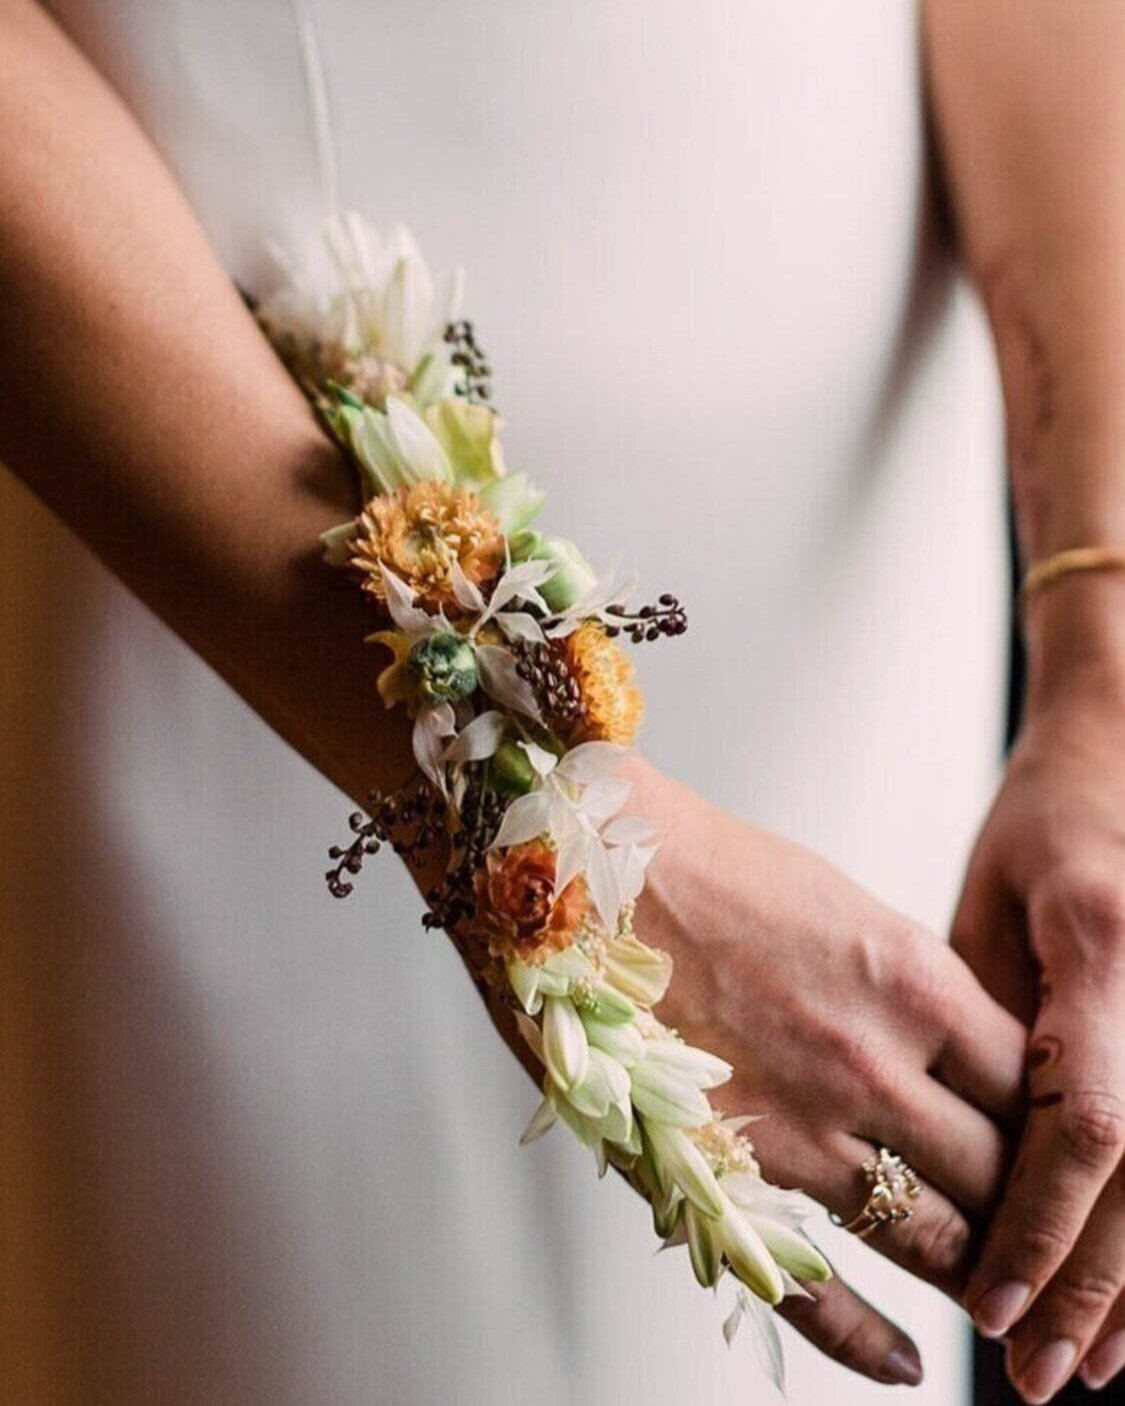 WEDDINGS  - Bridal Bouquets, Boutonnieres, Centerpieces, Custom Wearables, Statement Installations…We can bring any floral vision to life.Now booking for 2021 & 2022! Limited availability.